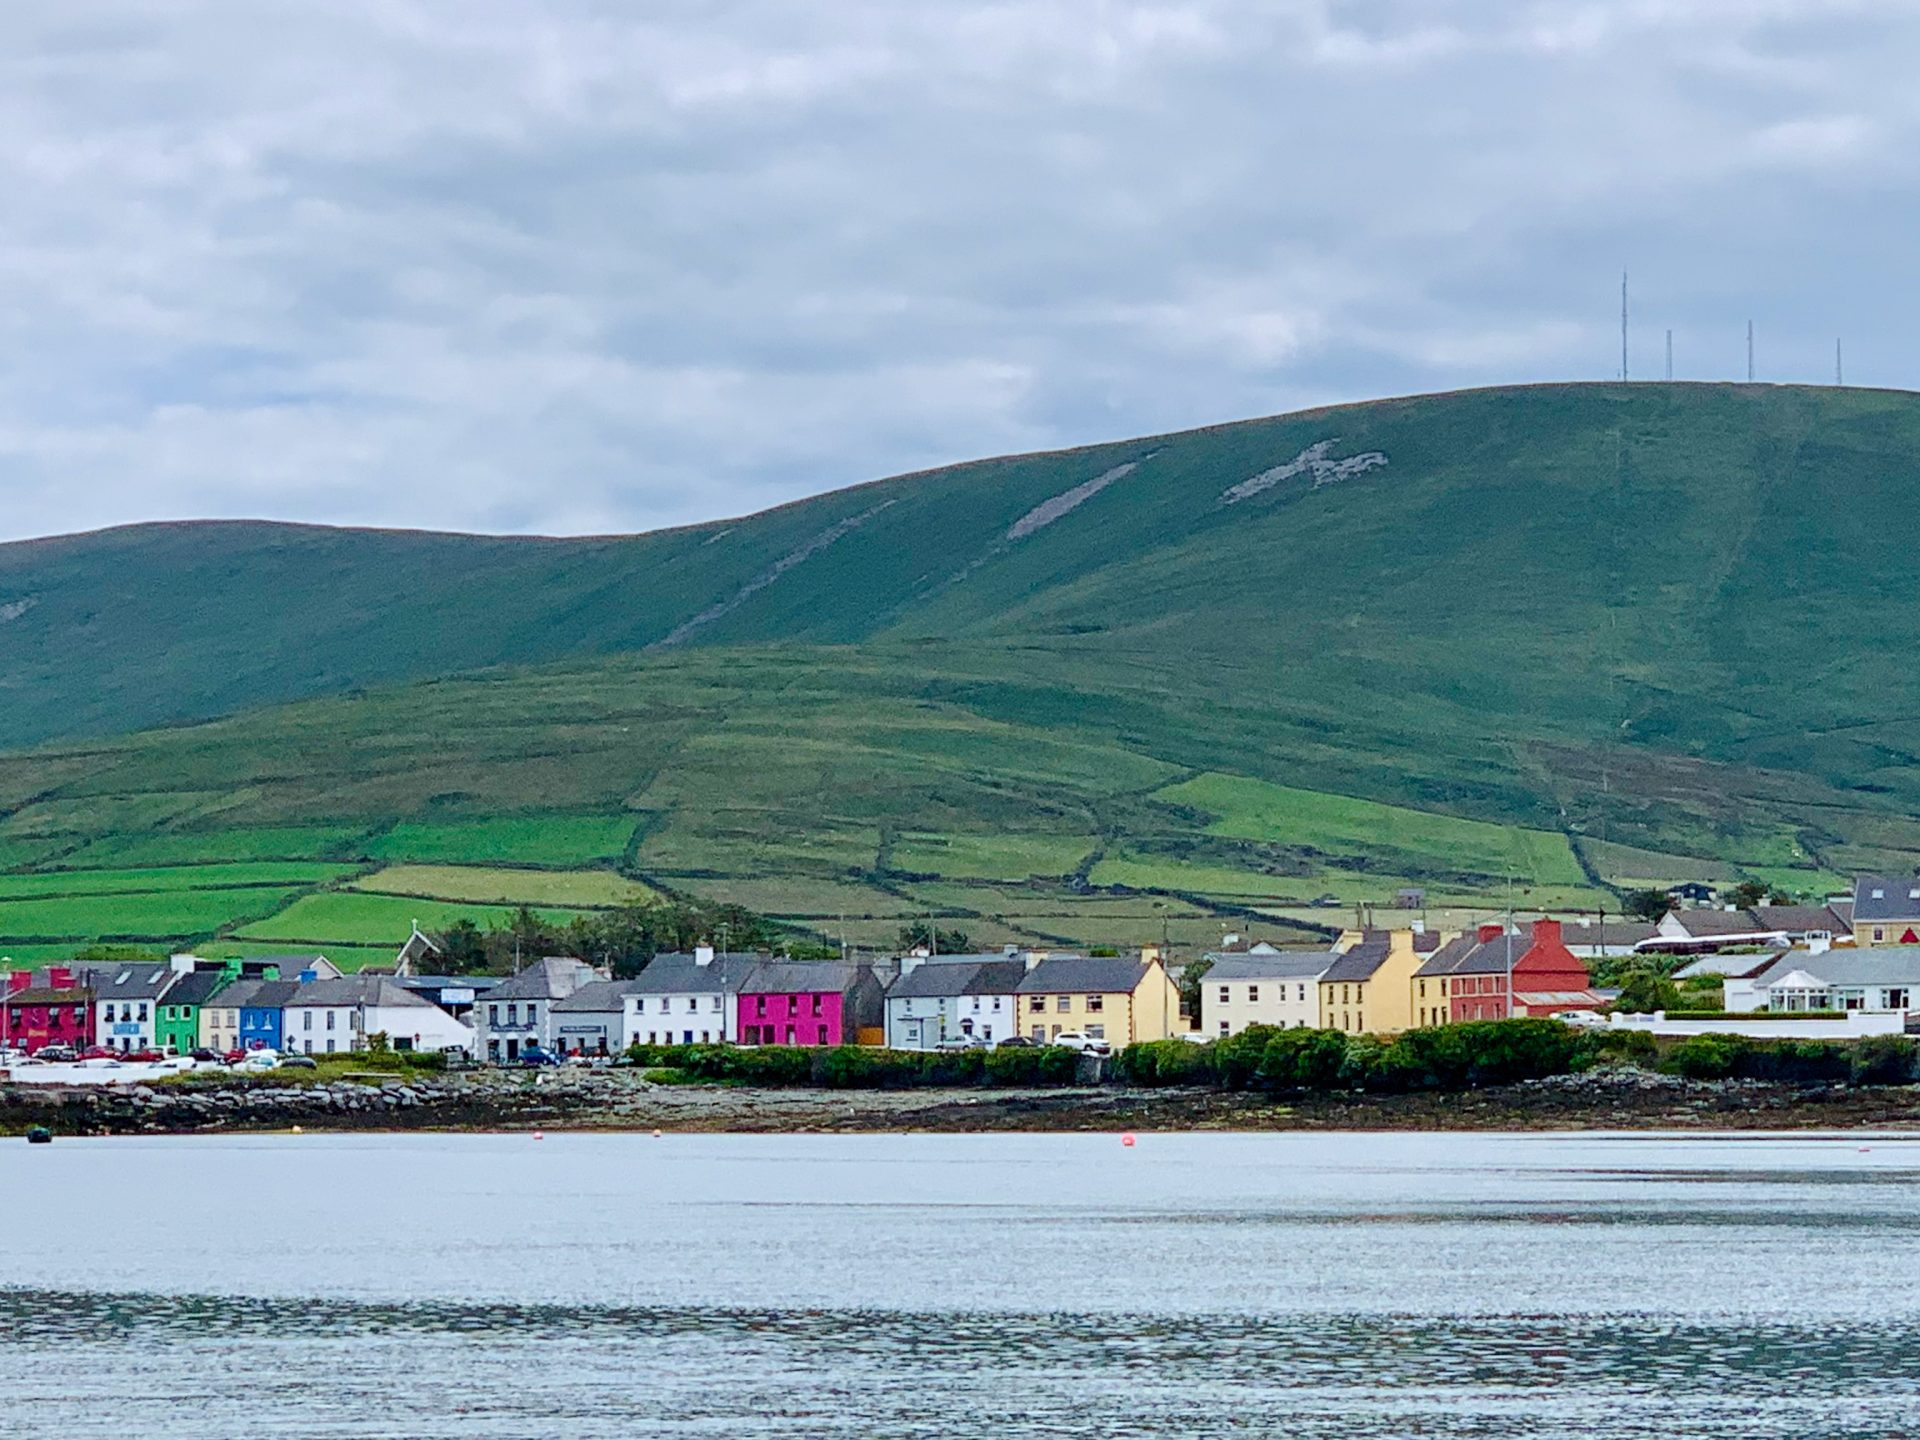 Portmagee, Ireland Photo by Tripscholars